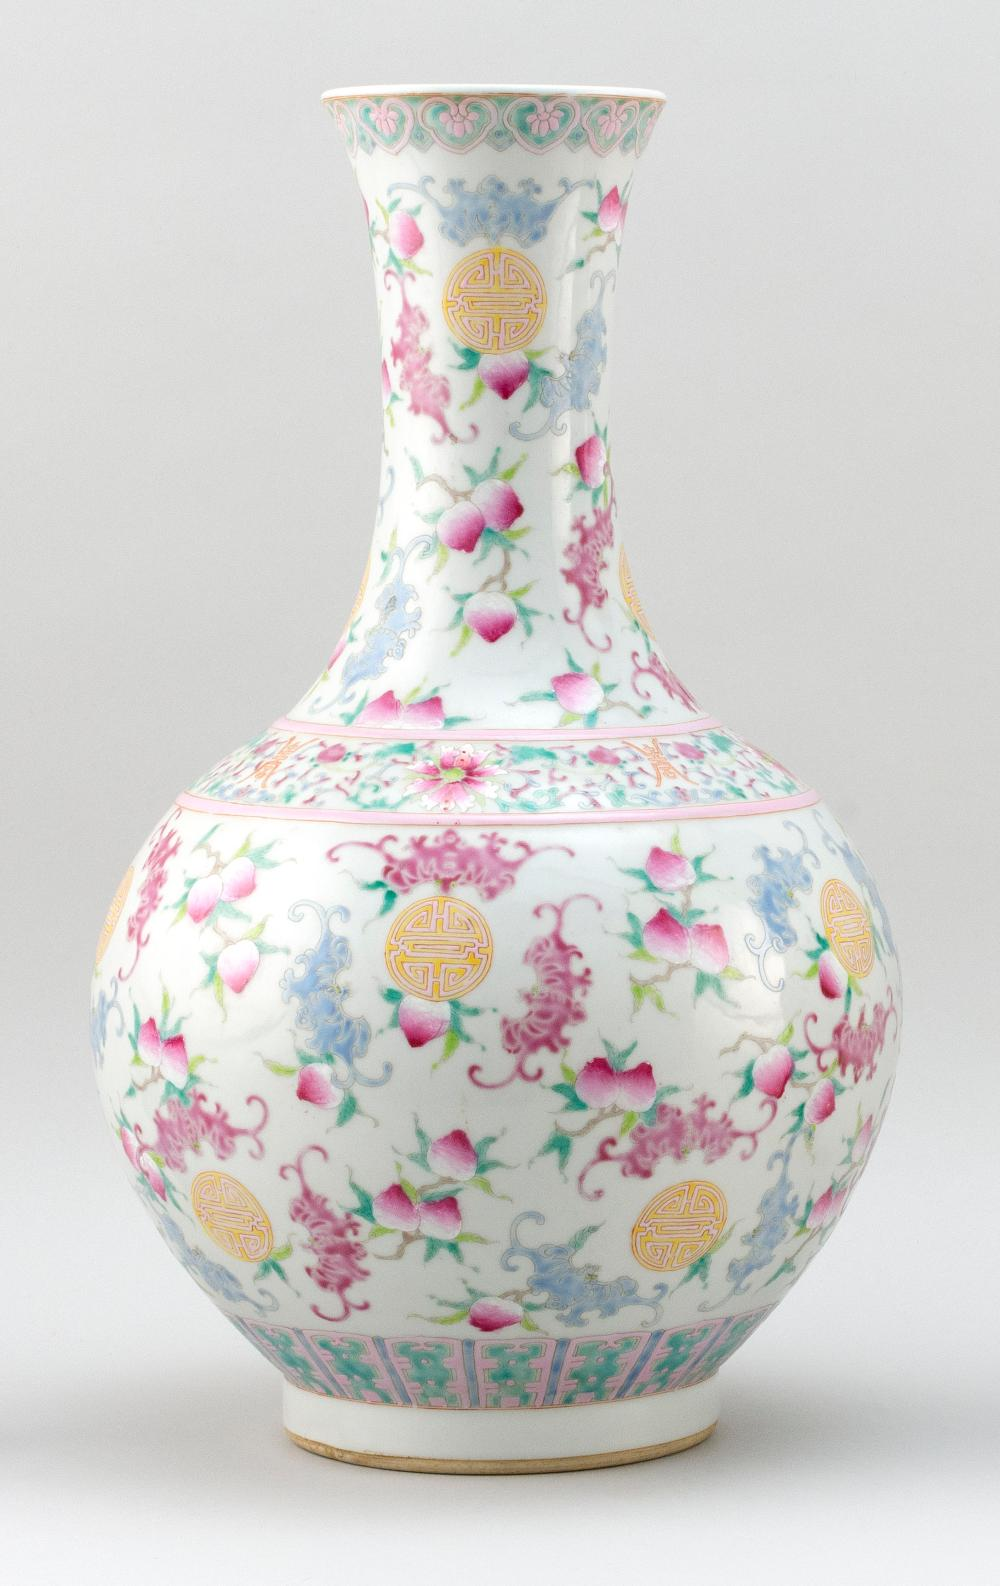 "CHINESE POLYCHROME PORCELAIN VASE In mallet form, with bat and shou design. Six-character Jiaqing mark on base. Height 17.5""."